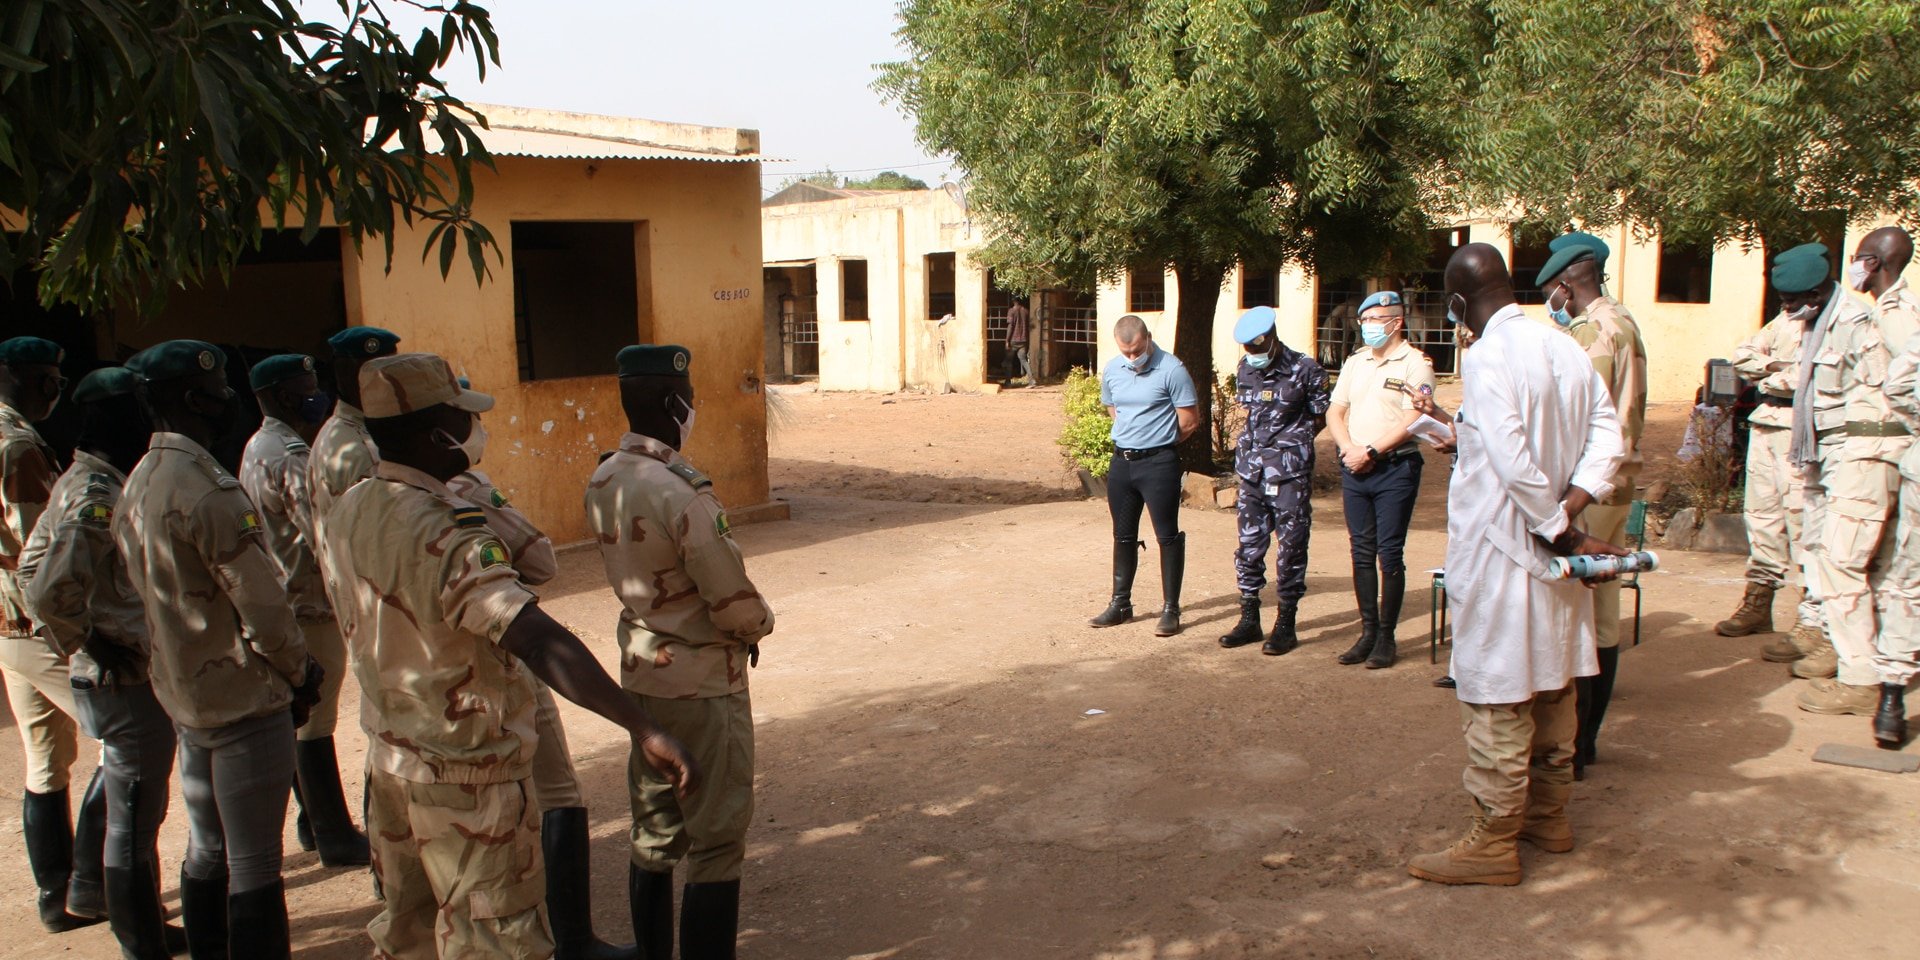 Carl Emery, accompanied by a Malian gendarmerie commander in costume, stands in front of nine uniformed officers.